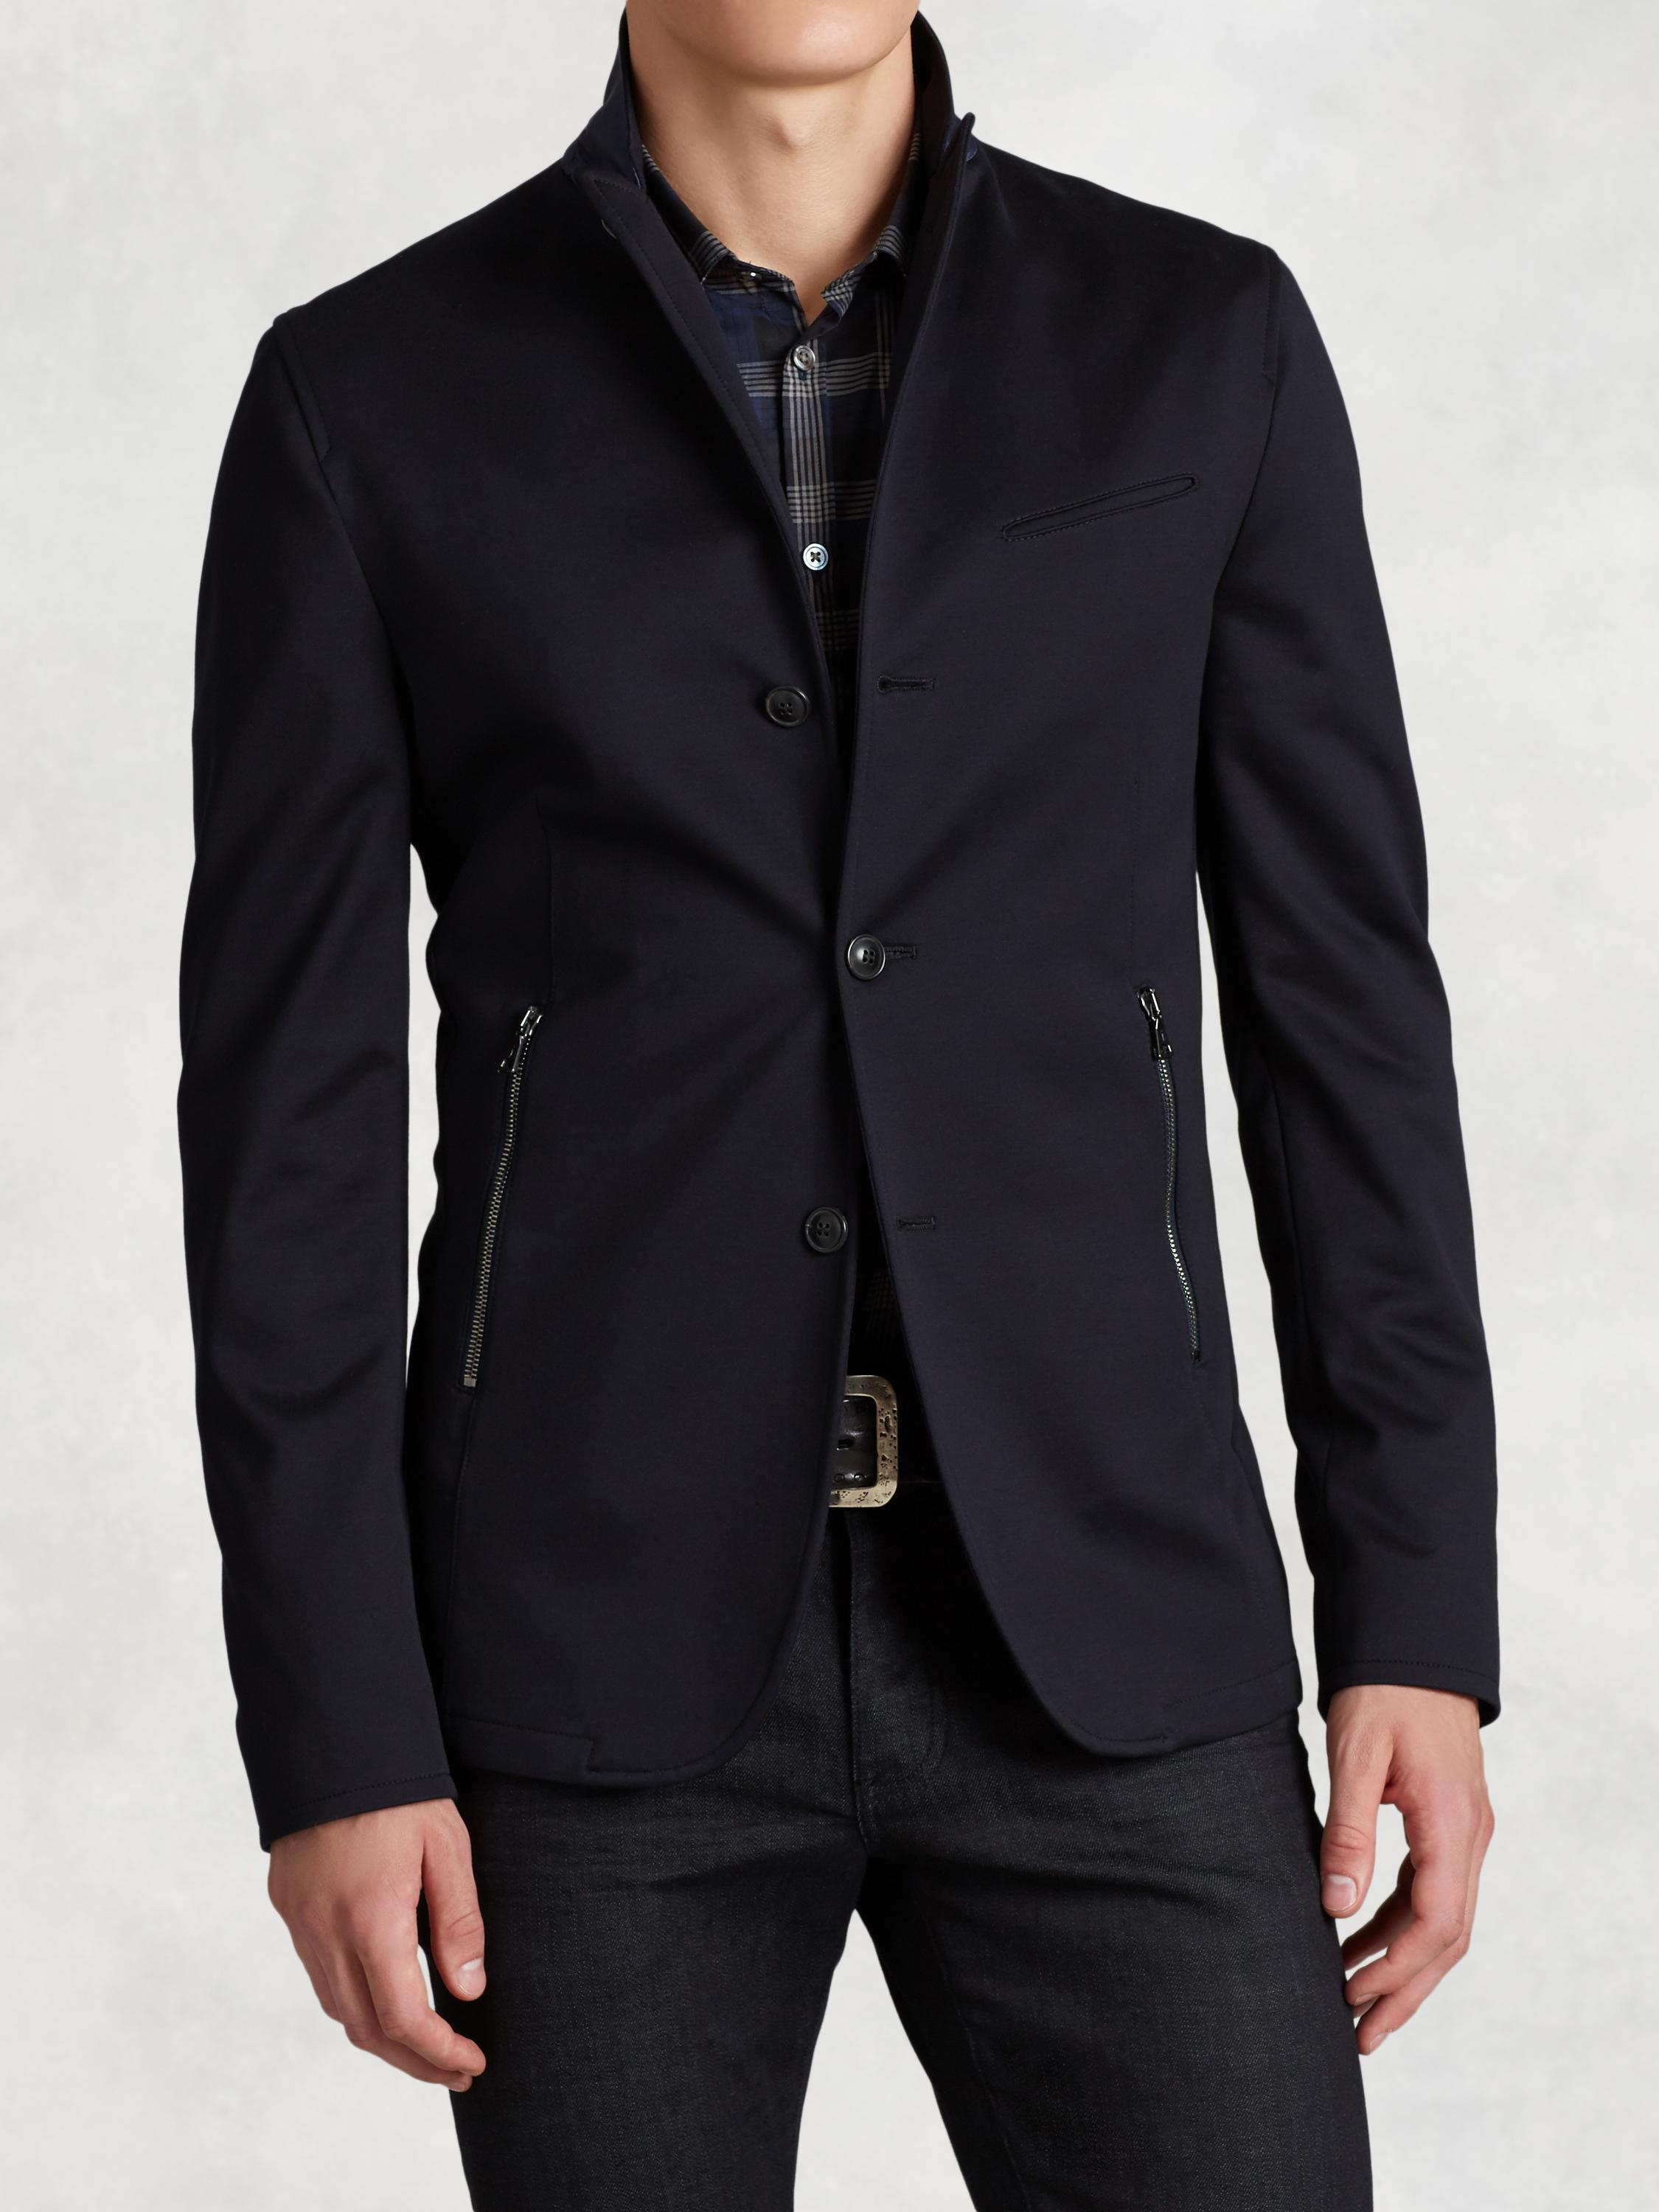 Convertible Lapel Jacket